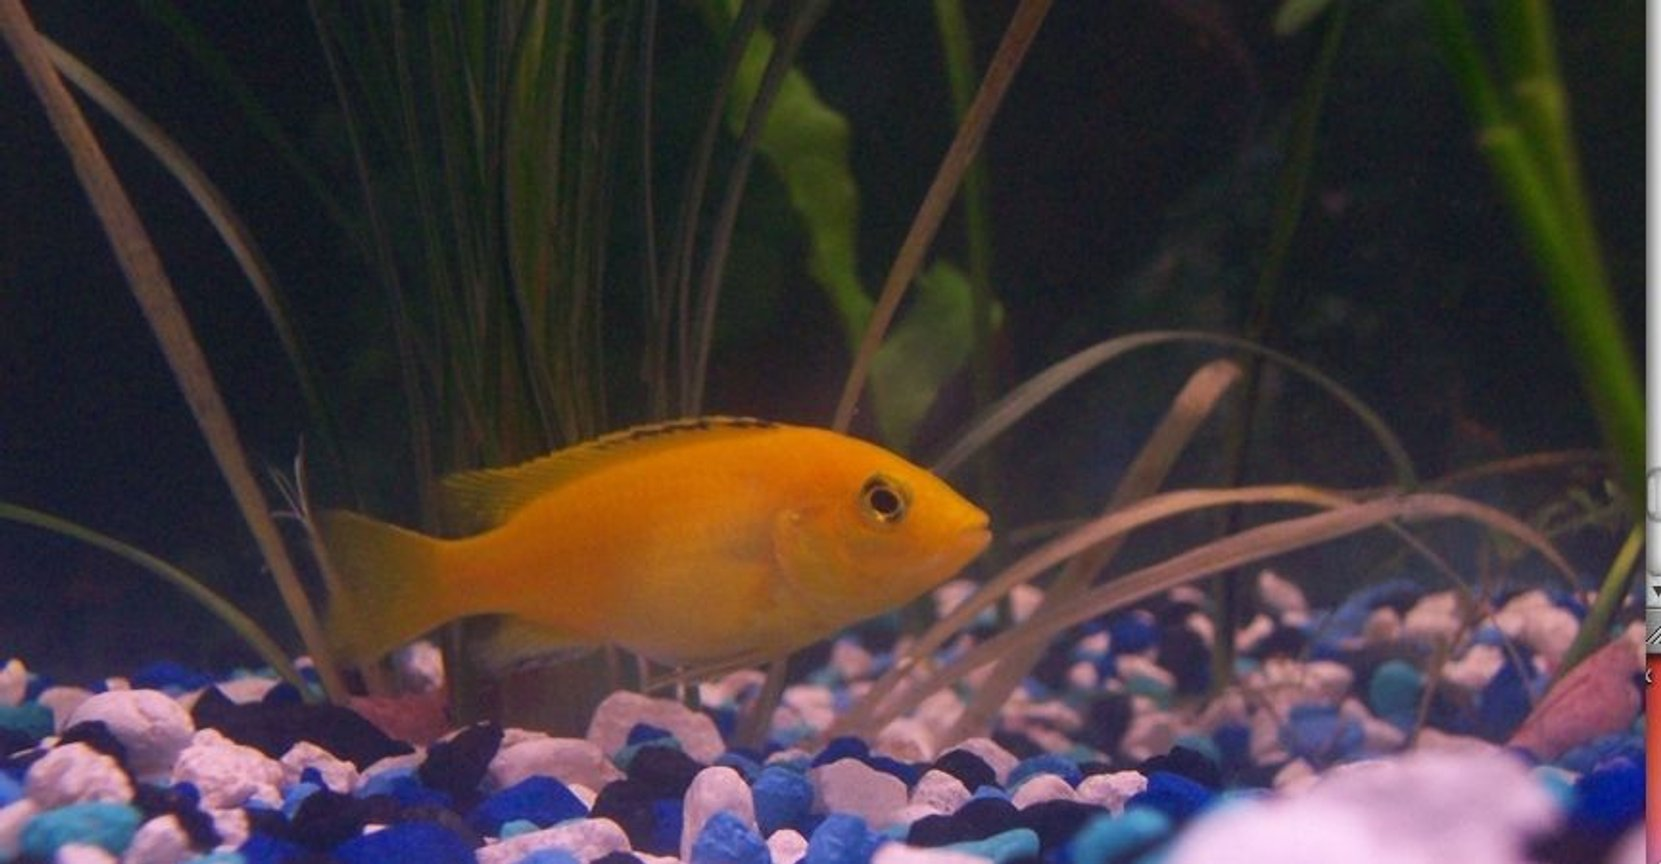 freshwater fish - labidochromis caeruleus - electric yellow cichlid stocking in 55 gallons tank - Yellow Cichlid